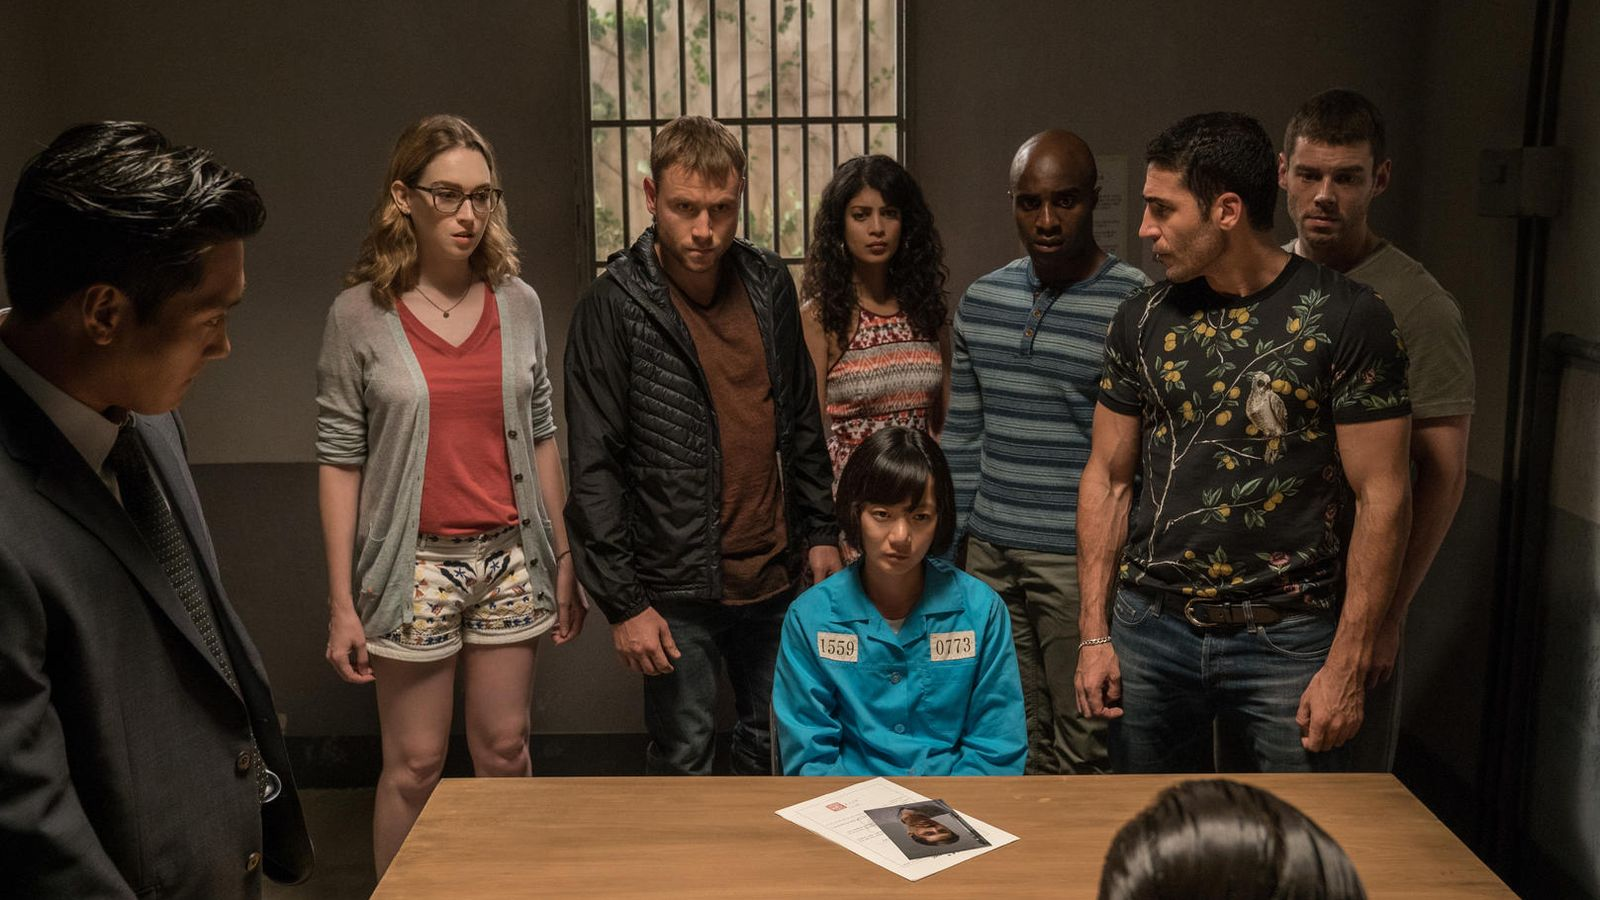 """Sense8"" Season 2 Premier Confirmed"